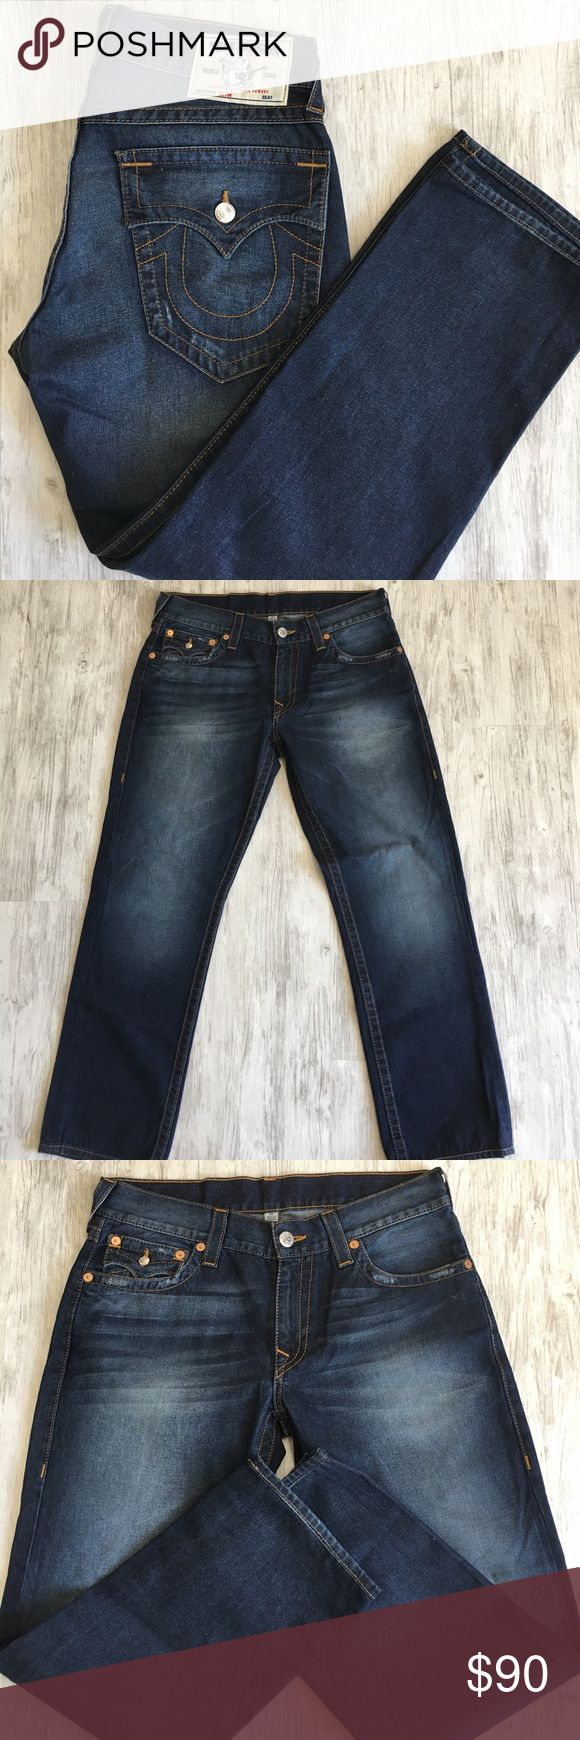 True Religions men's slim fit dark denim size 33 Brand new! Never worn! Size 33. True Religion Jeans Slim